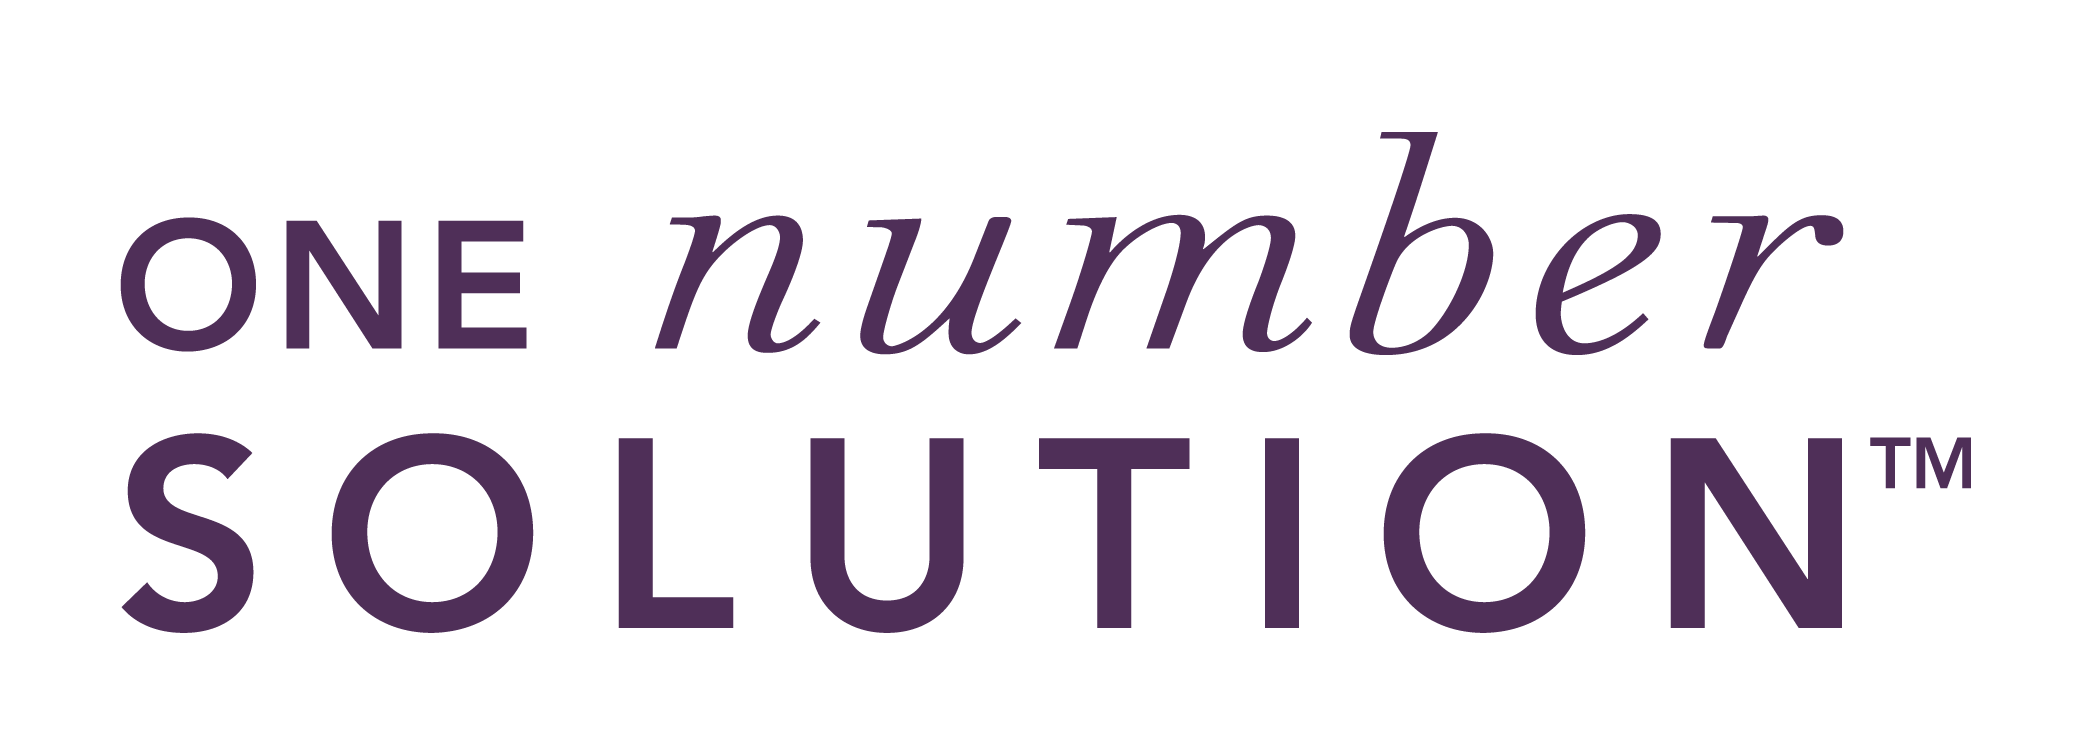 One Number Solution LOGO-02.png